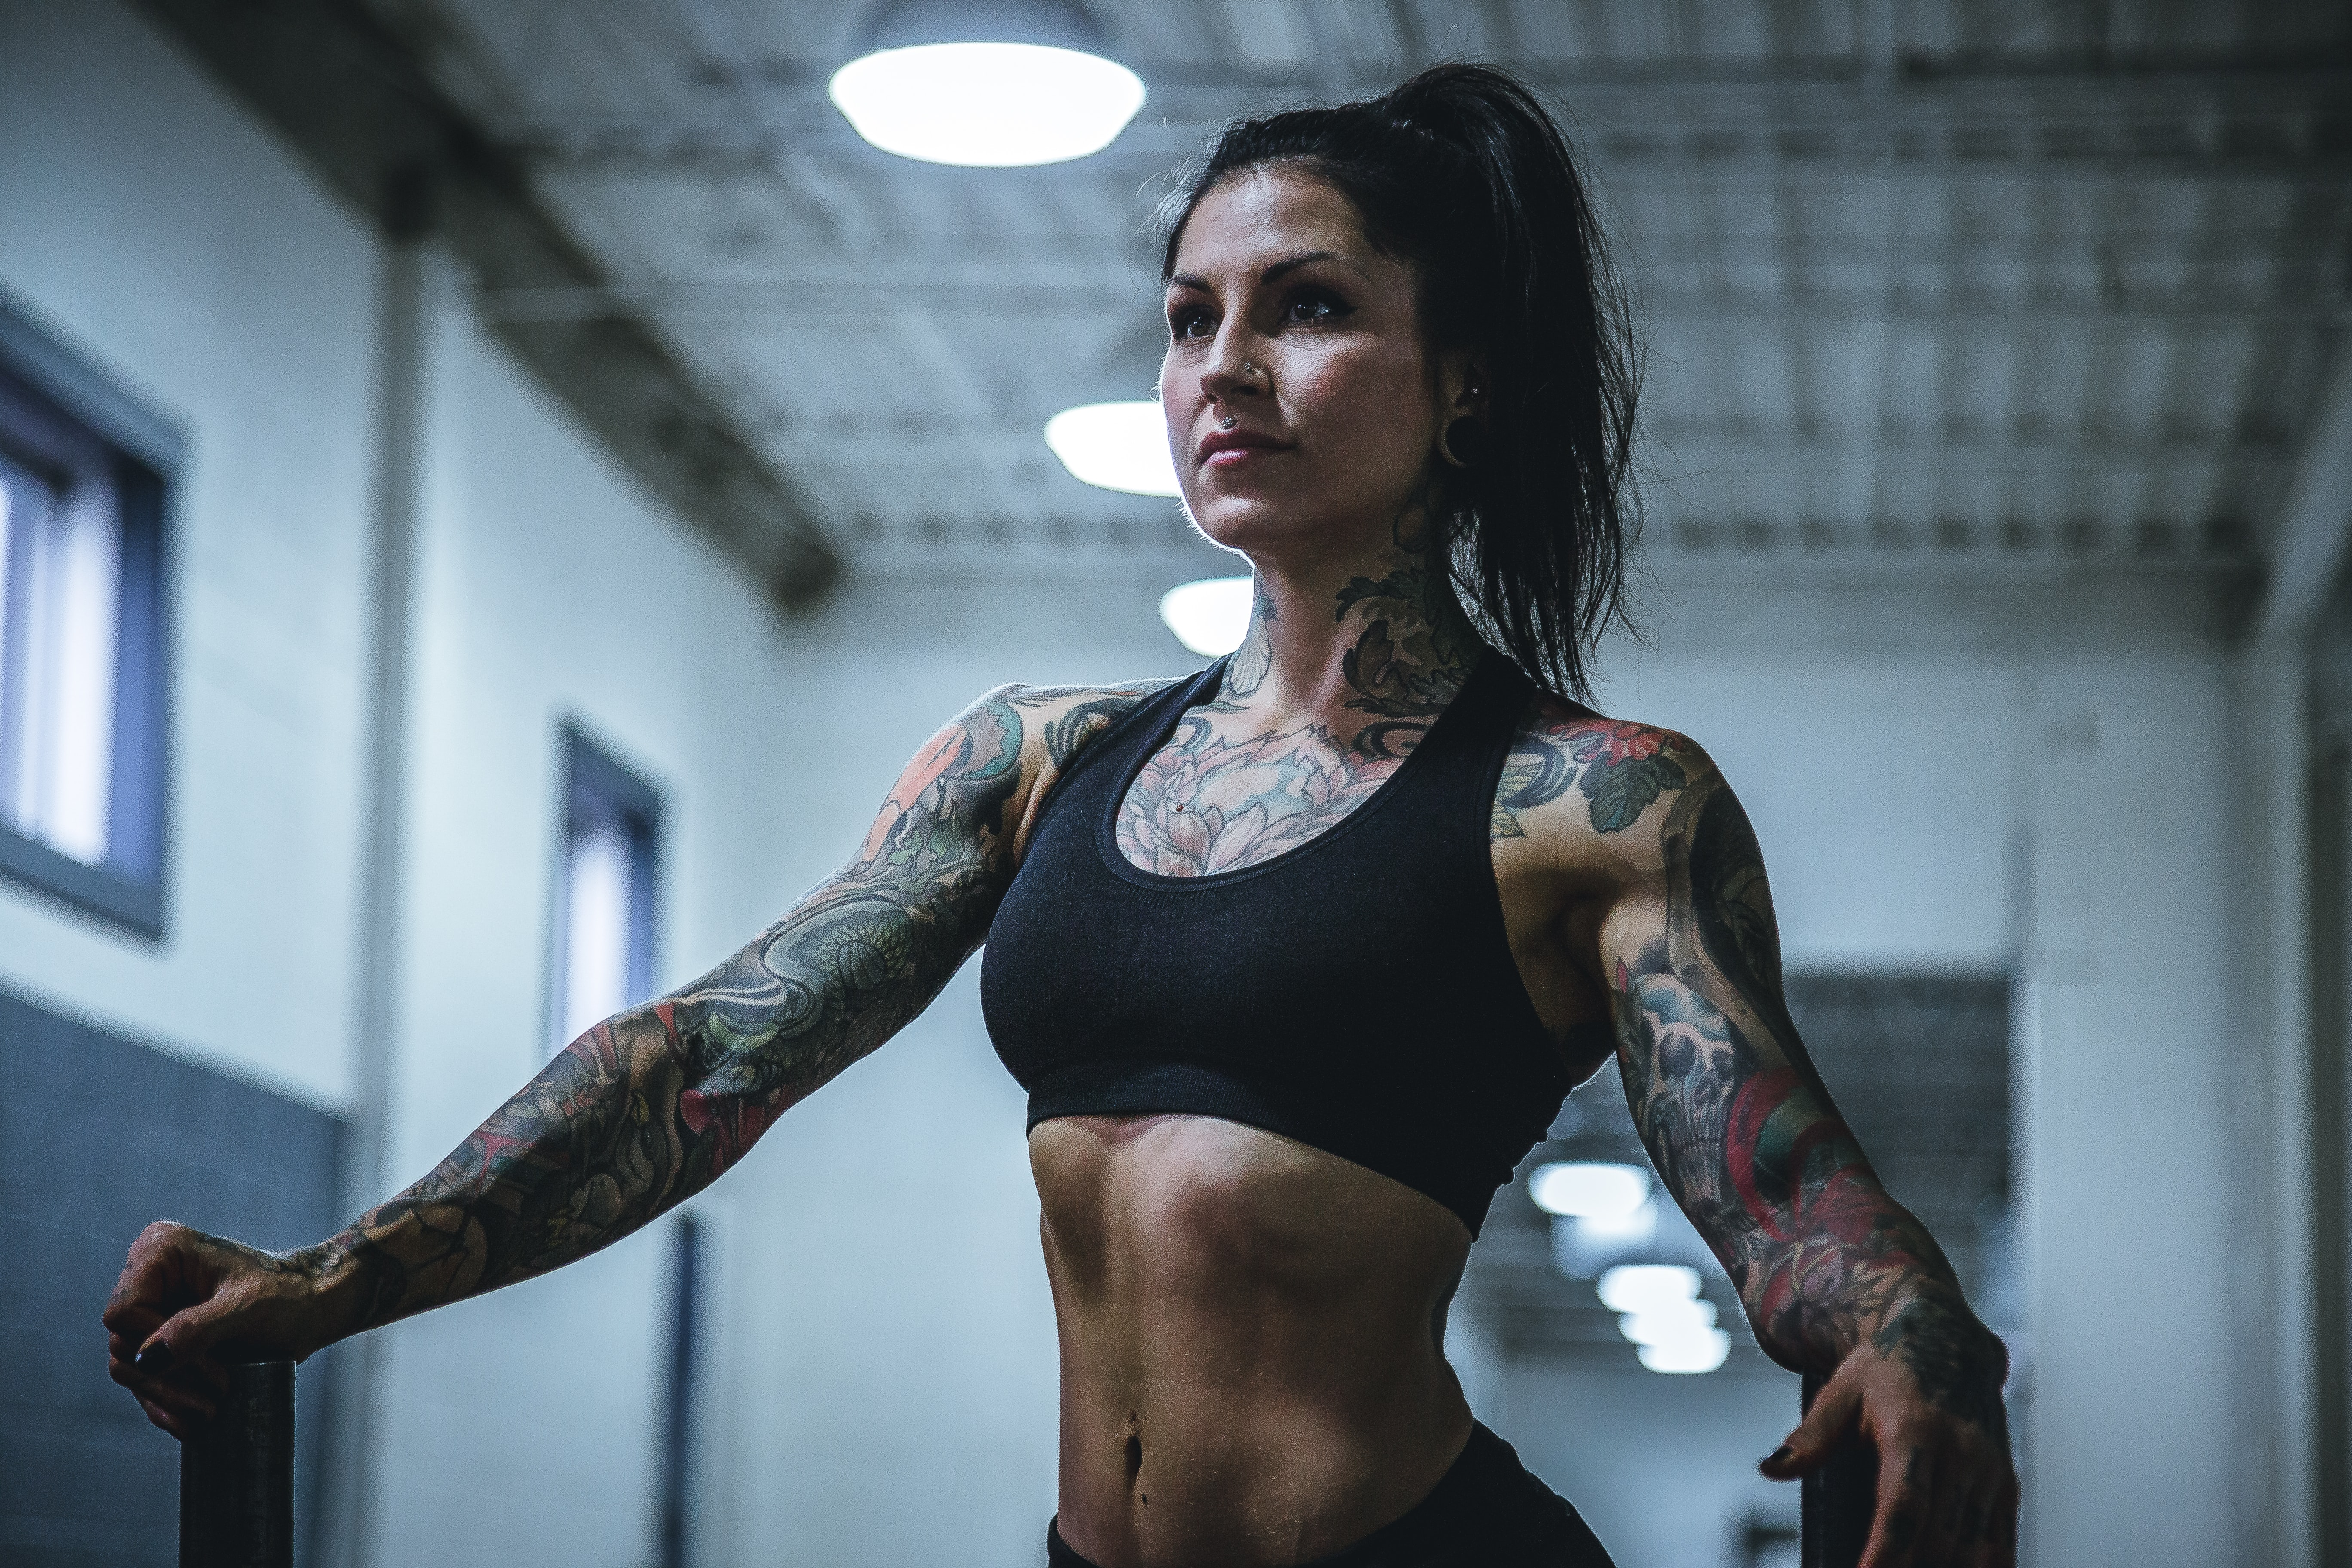 woman wearing black sports bra with tattoos